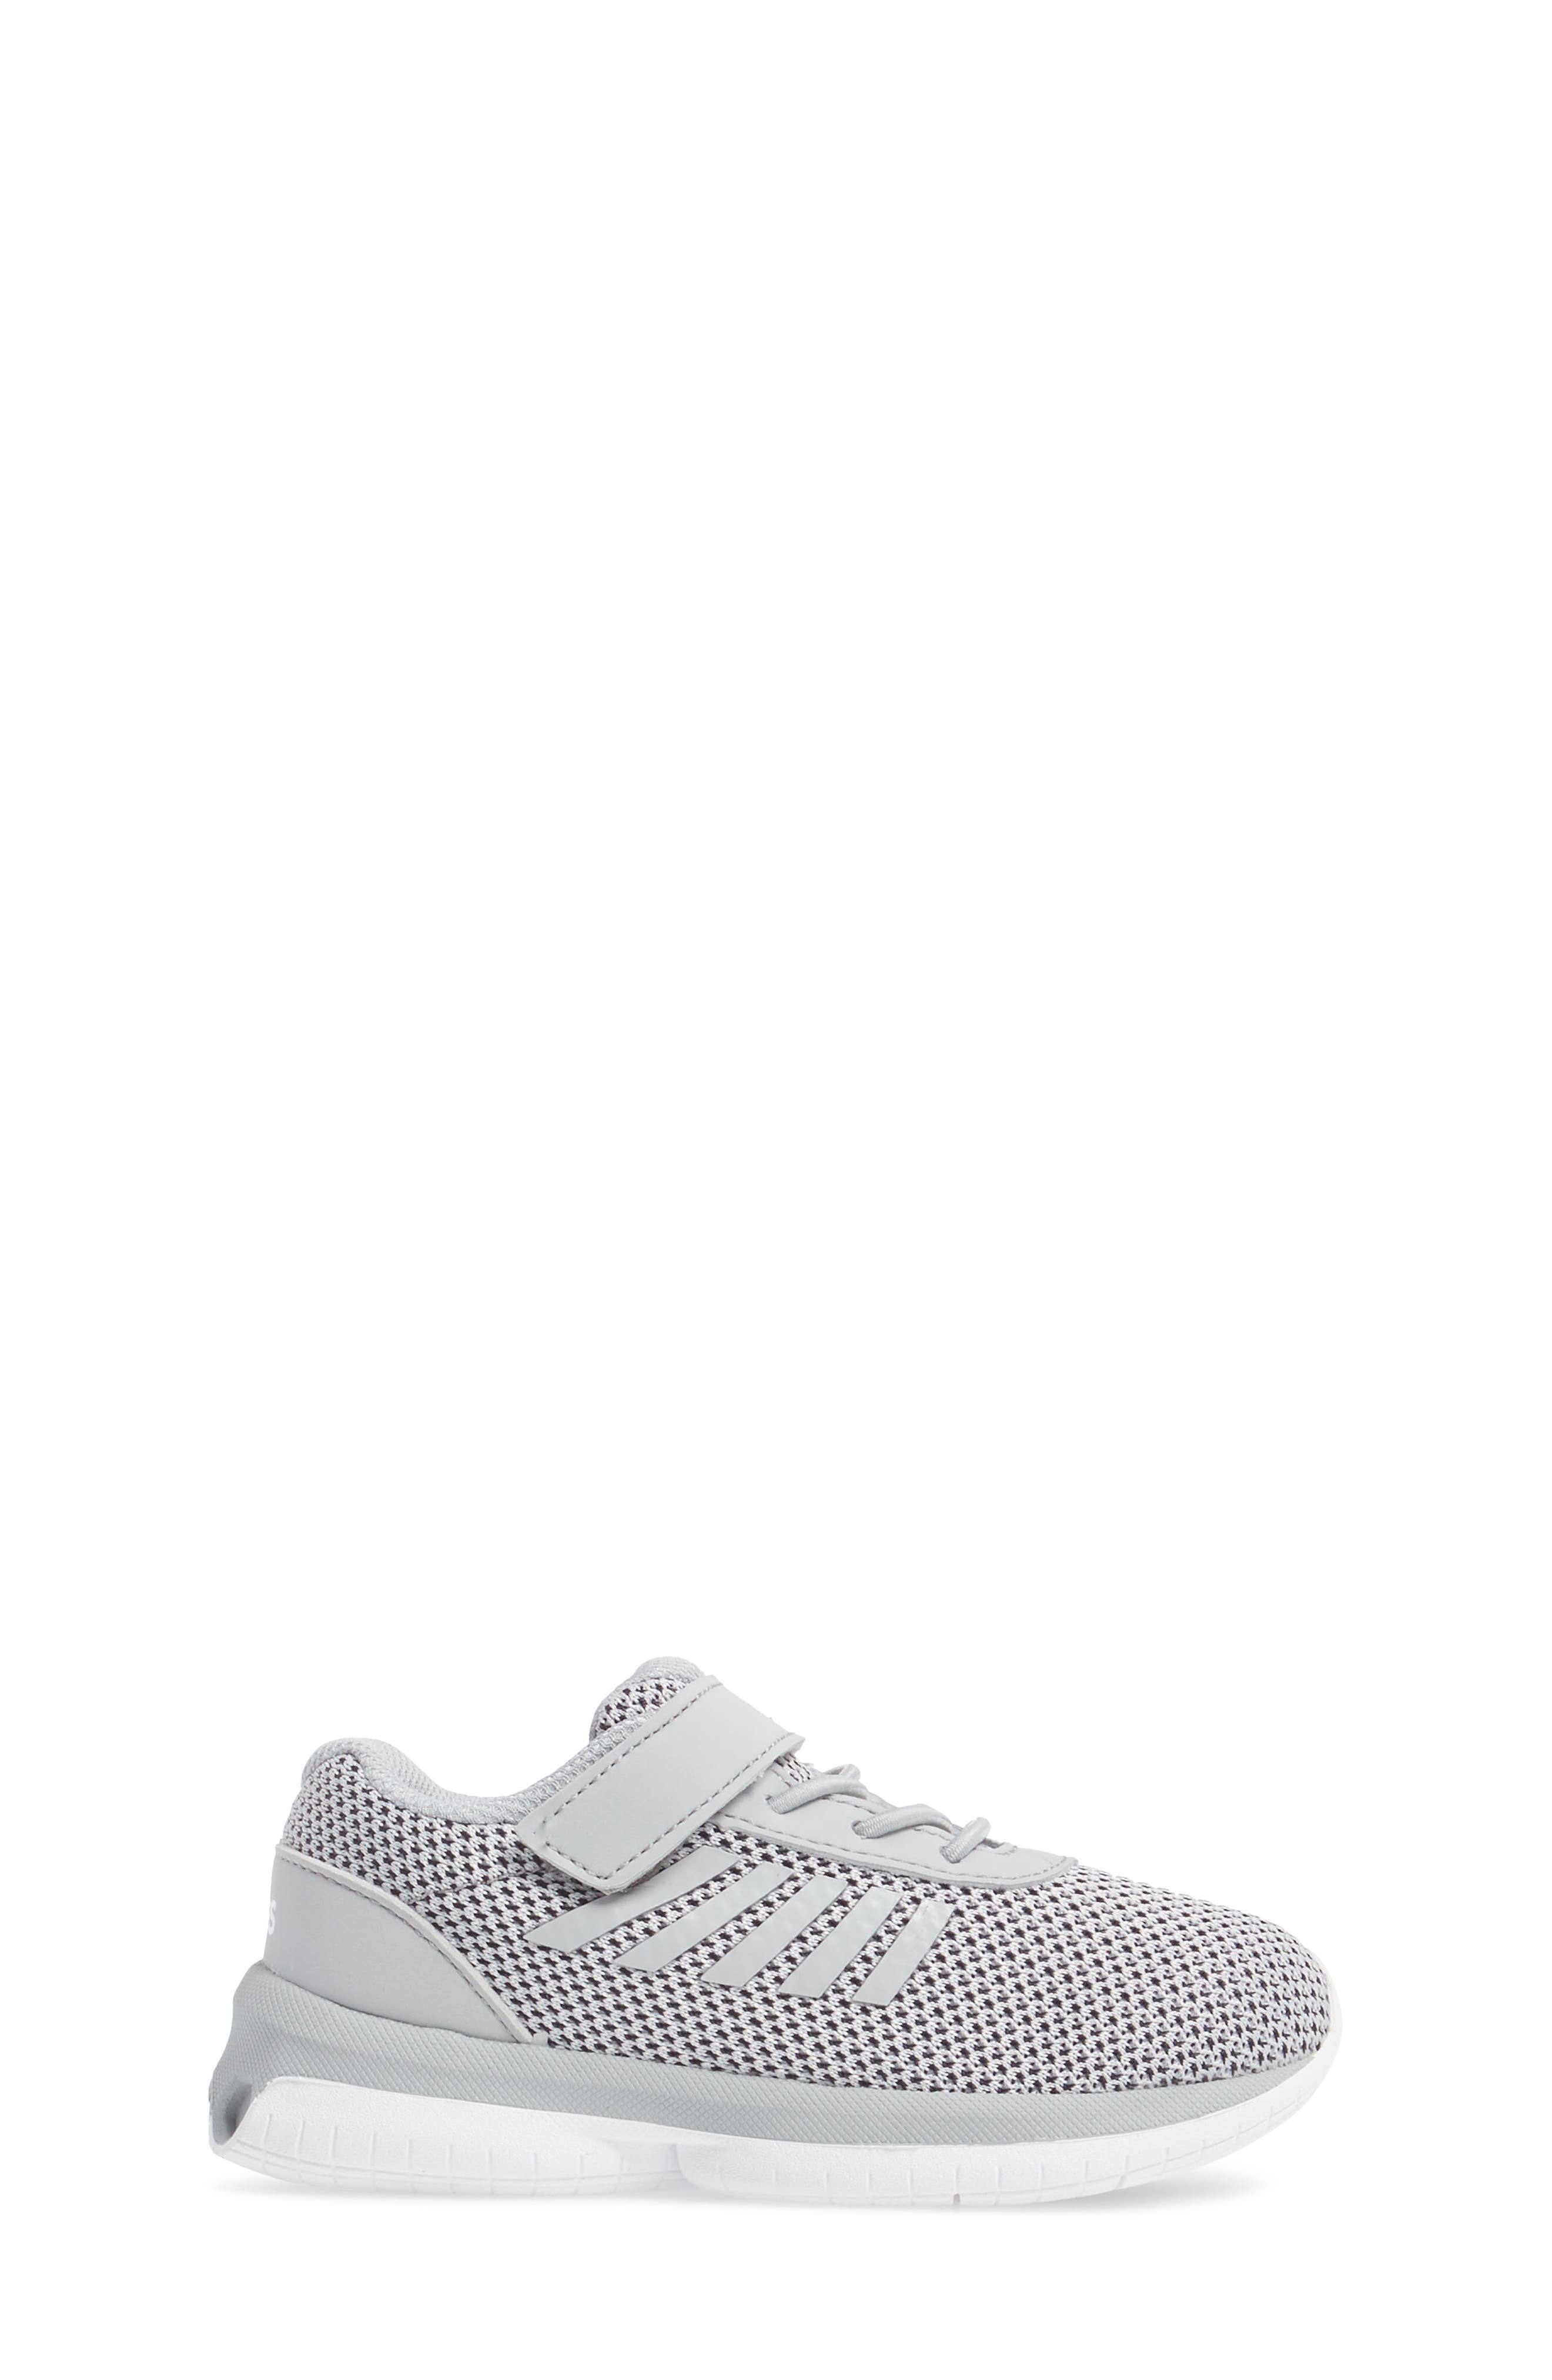 Tubes Infinity Sneaker,                             Alternate thumbnail 3, color,                             Highrise/ White